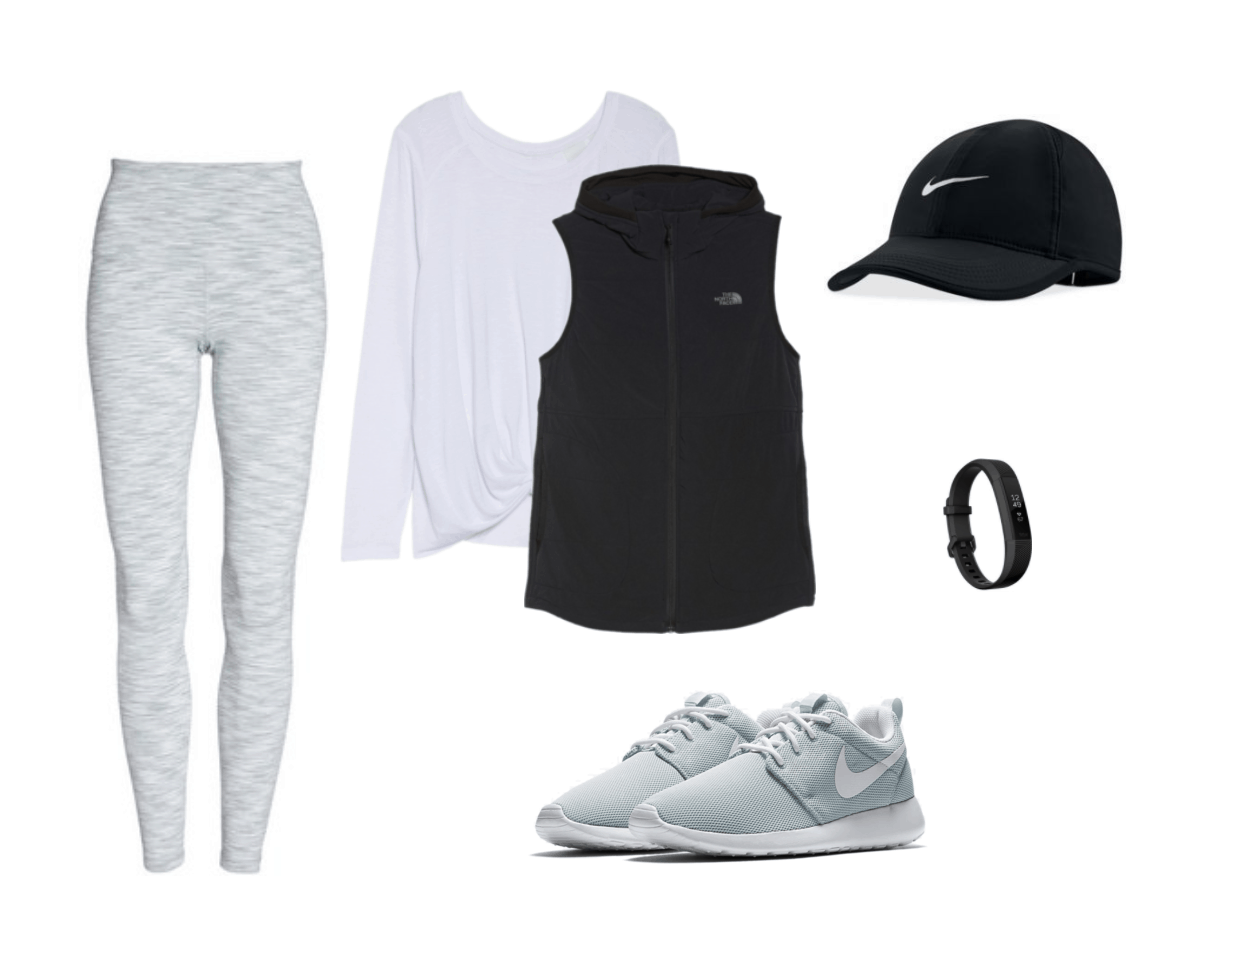 Athletic sneaker outfit: Gray leggings, white long sleeve tee shirt, black vest, black hat, fitbit